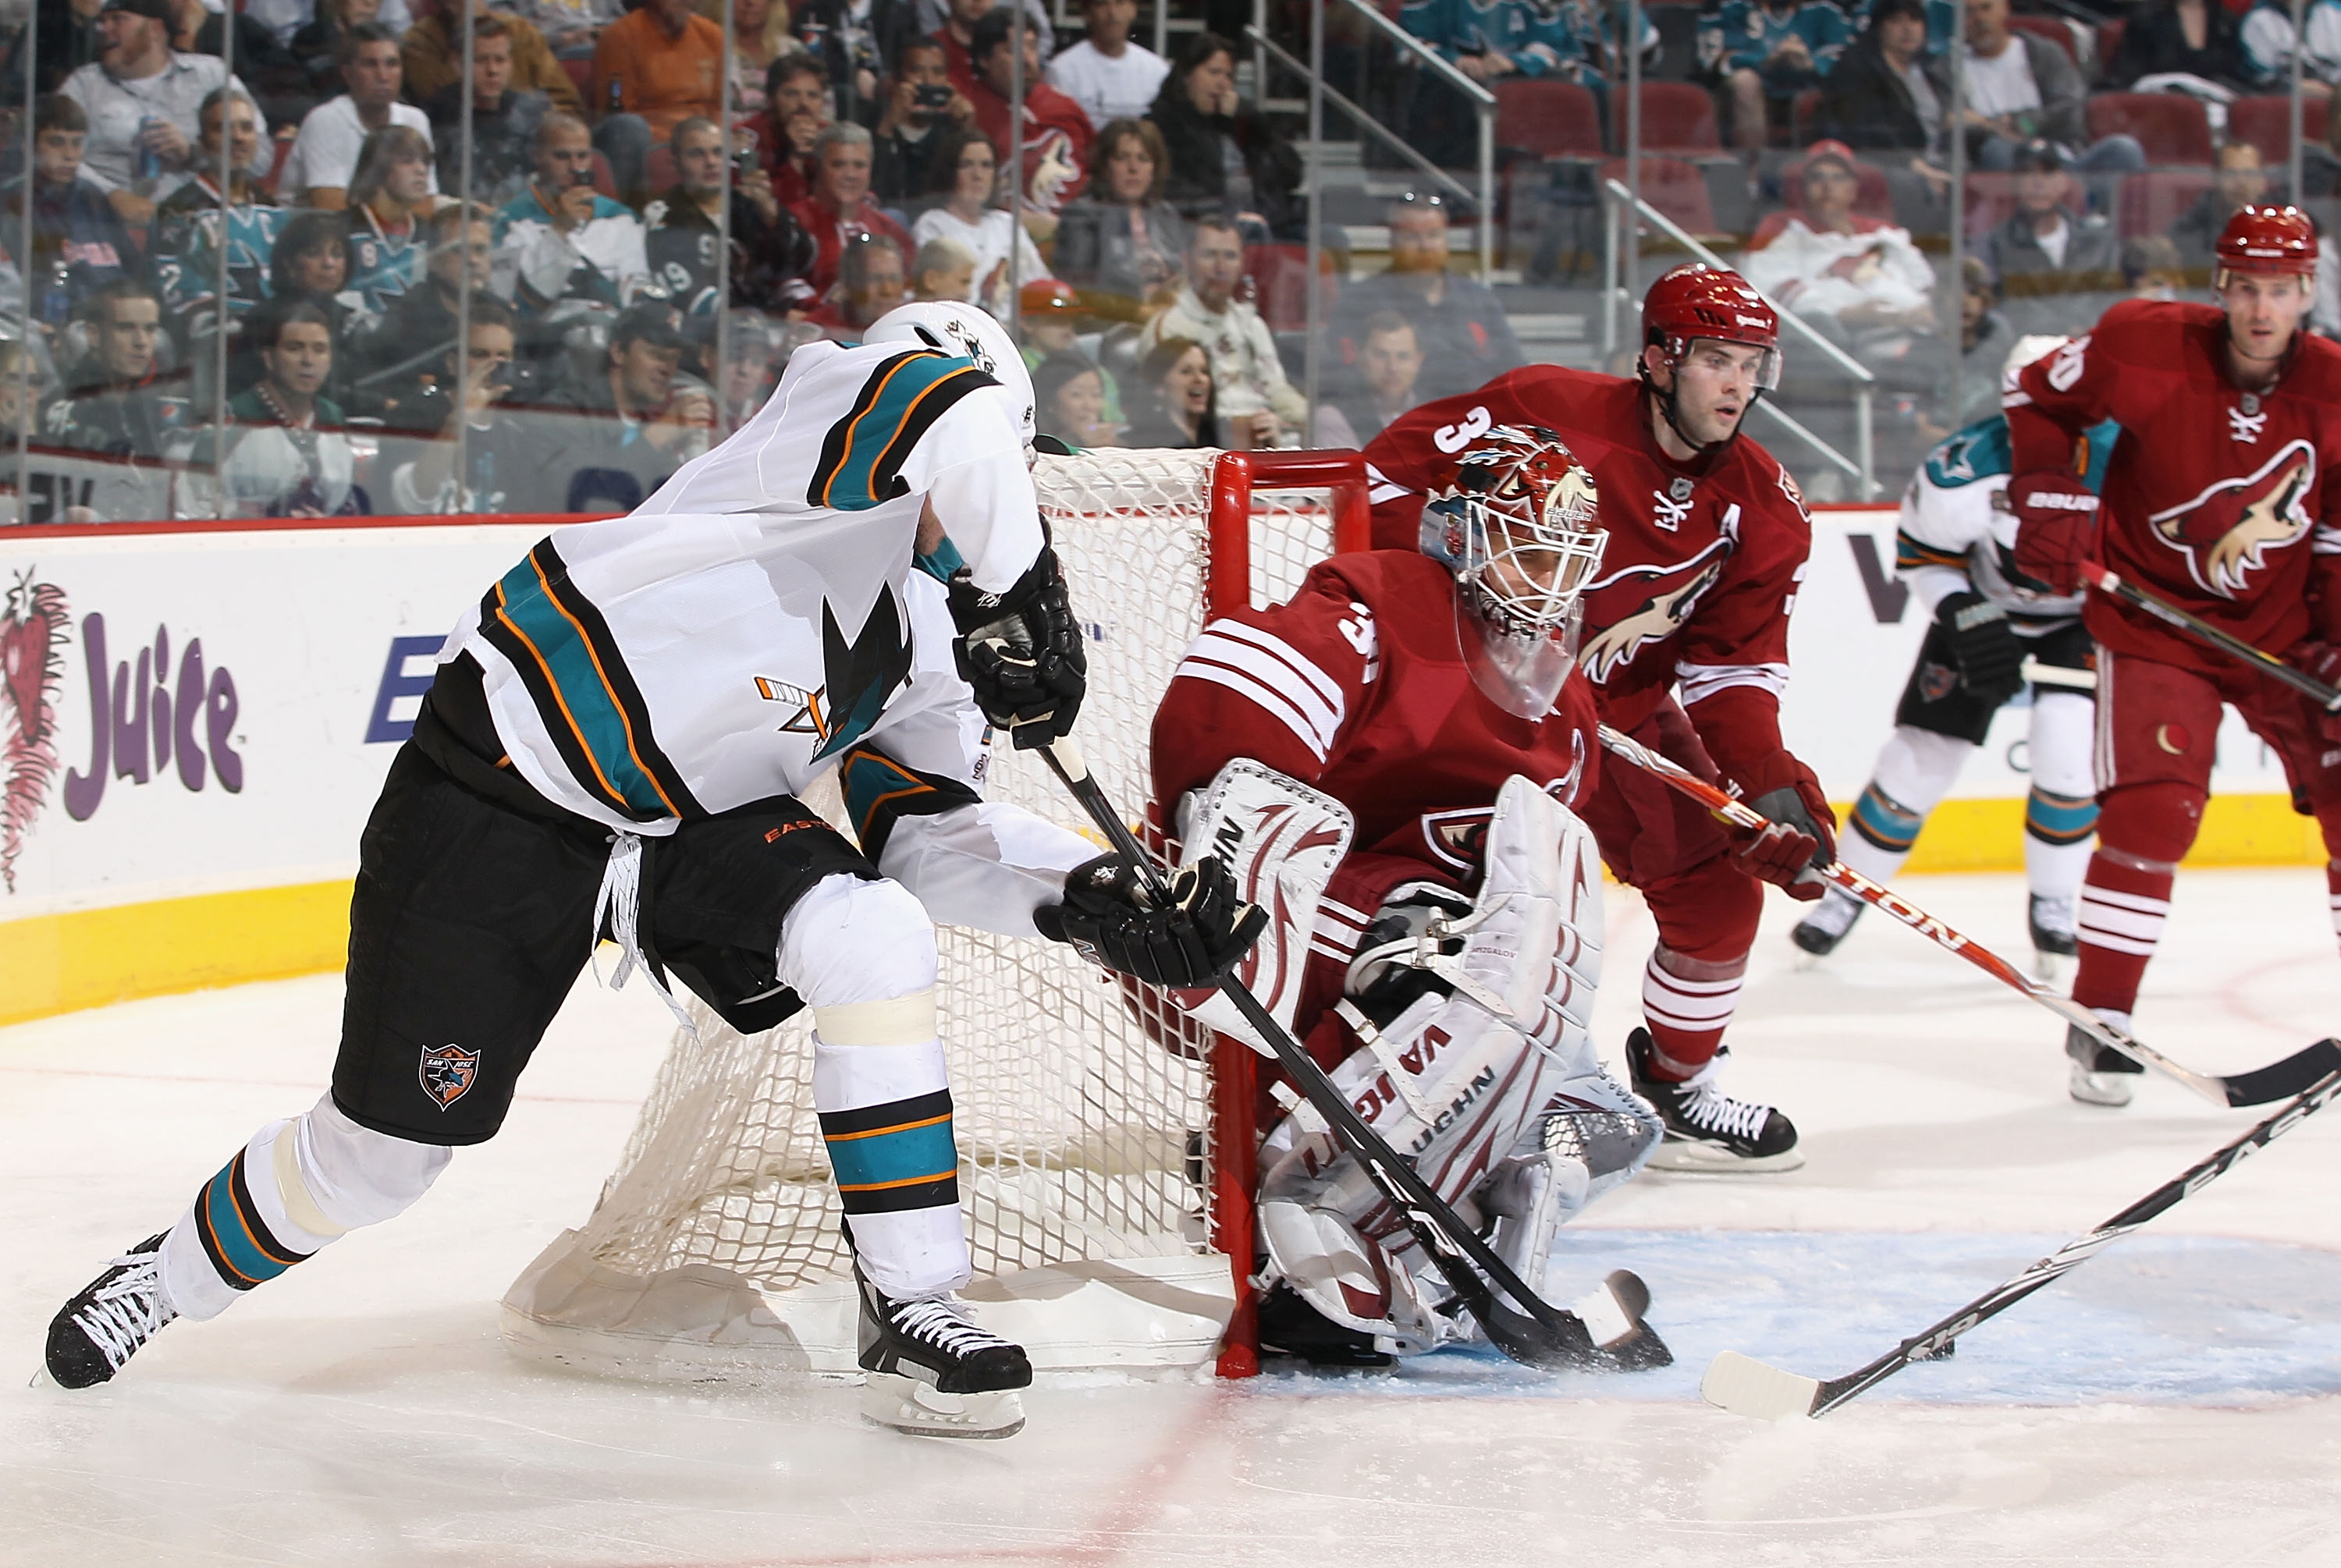 GLENDALE, AZ - MARCH 26:  Goaltender Ilya Bryzgalov #30 of the Phoenix Coyotes makes a pad save on the shot from Dany Heatley #15 of the San Jose Sharks during the NHL game at Jobing.com Arena on March 26, 2011 in Glendale, Arizona. The Sharks defeated th